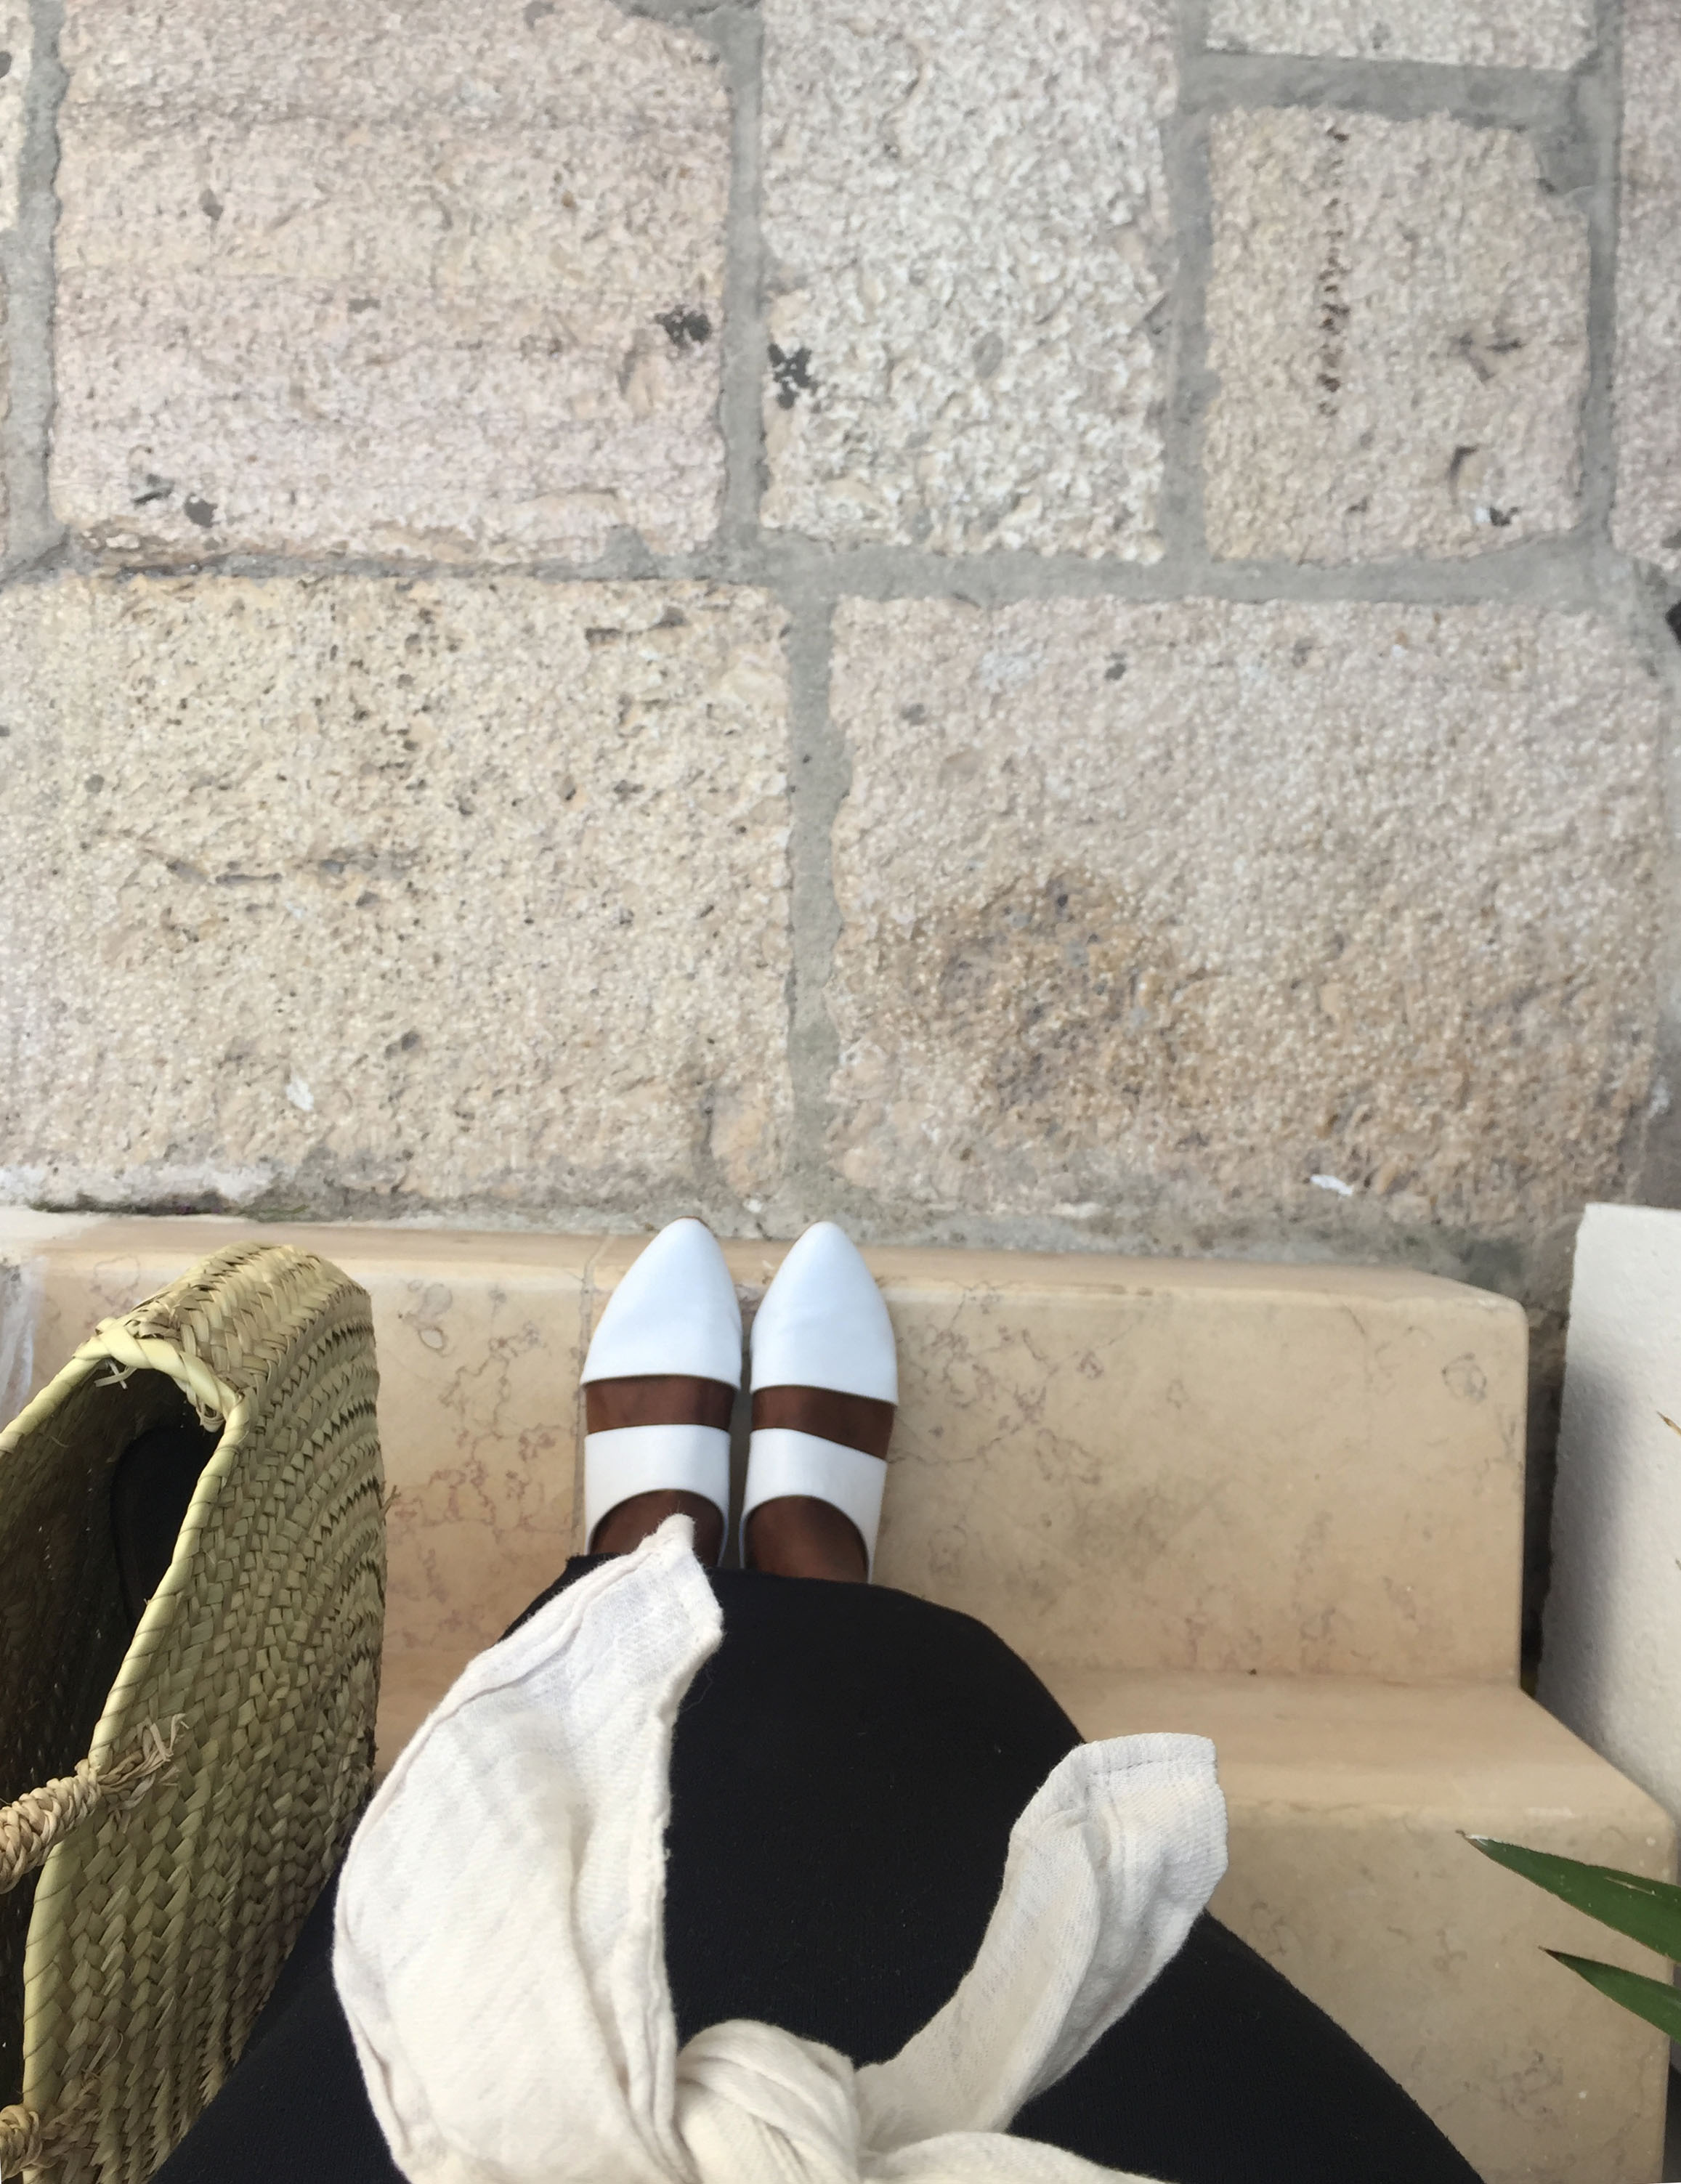 katherine of zou xou wearing the mule in white